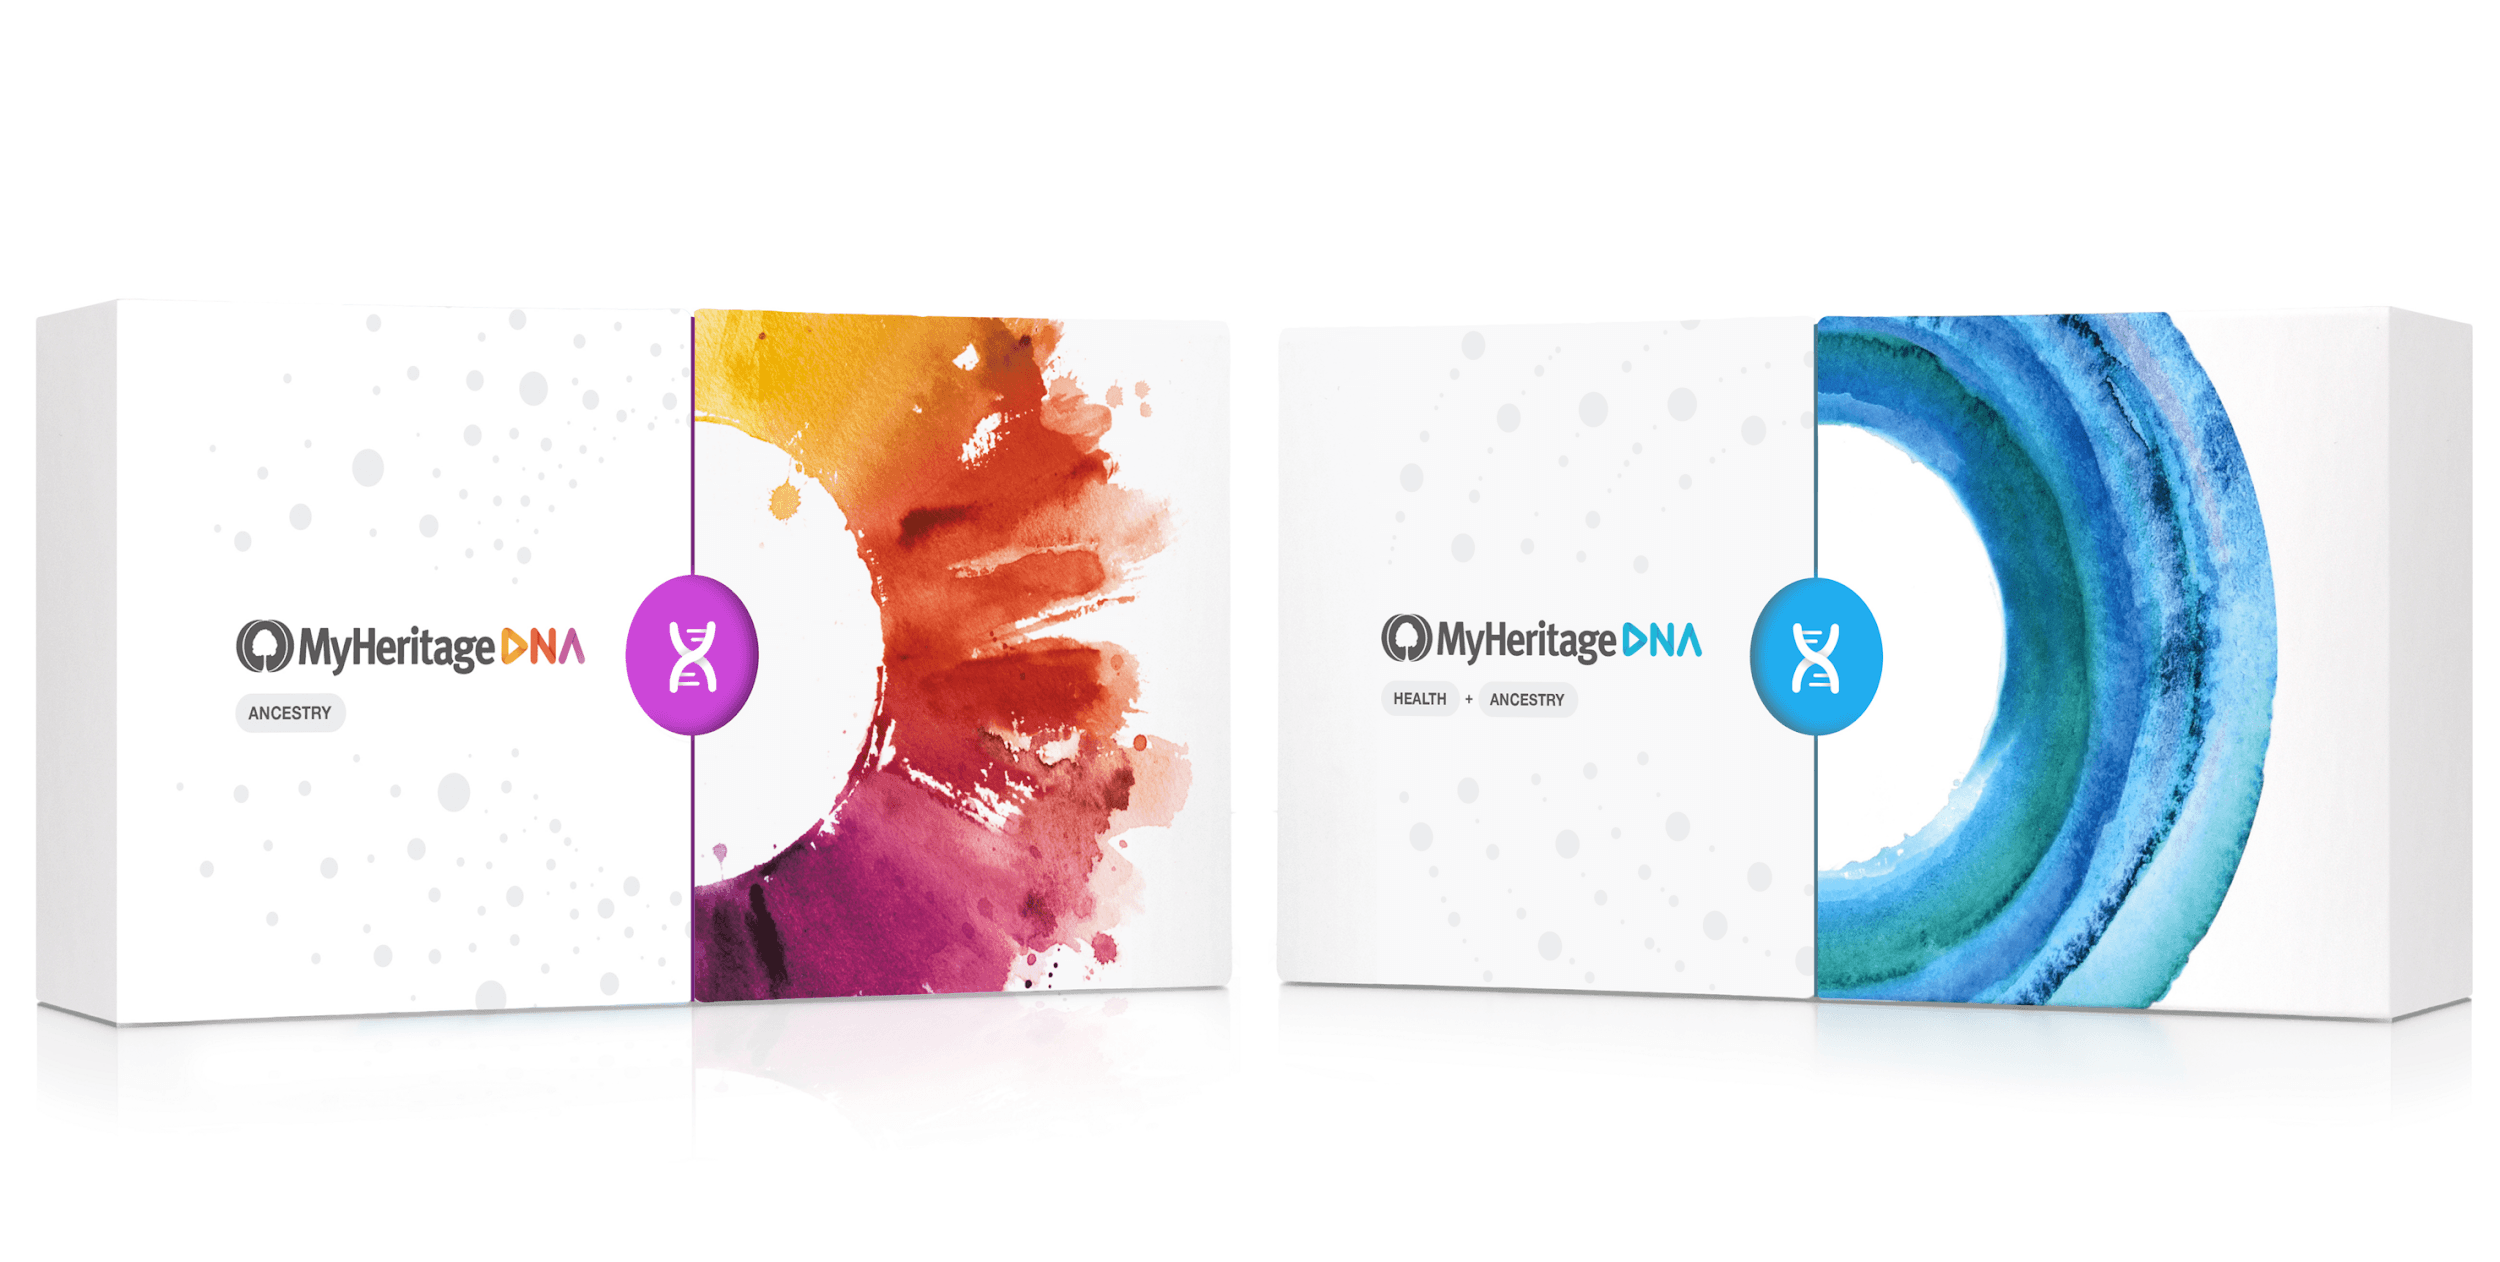 Introducing the MyHeritage DNA Health+Ancestry Test